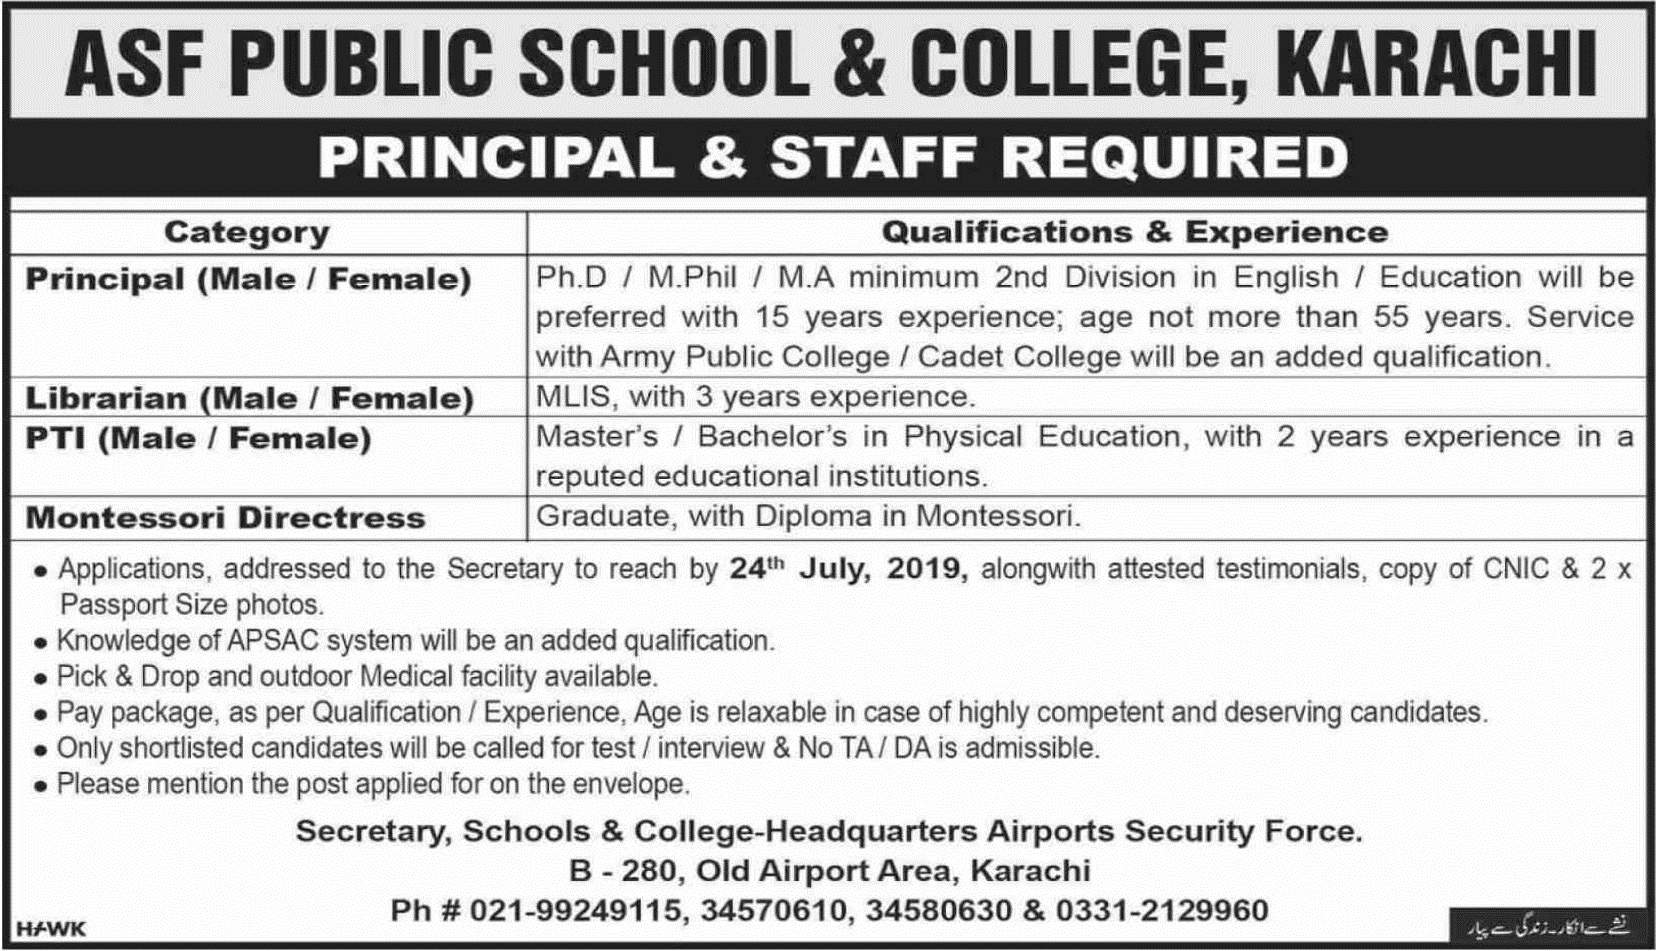 ASF Public School & College Karachi Jobs